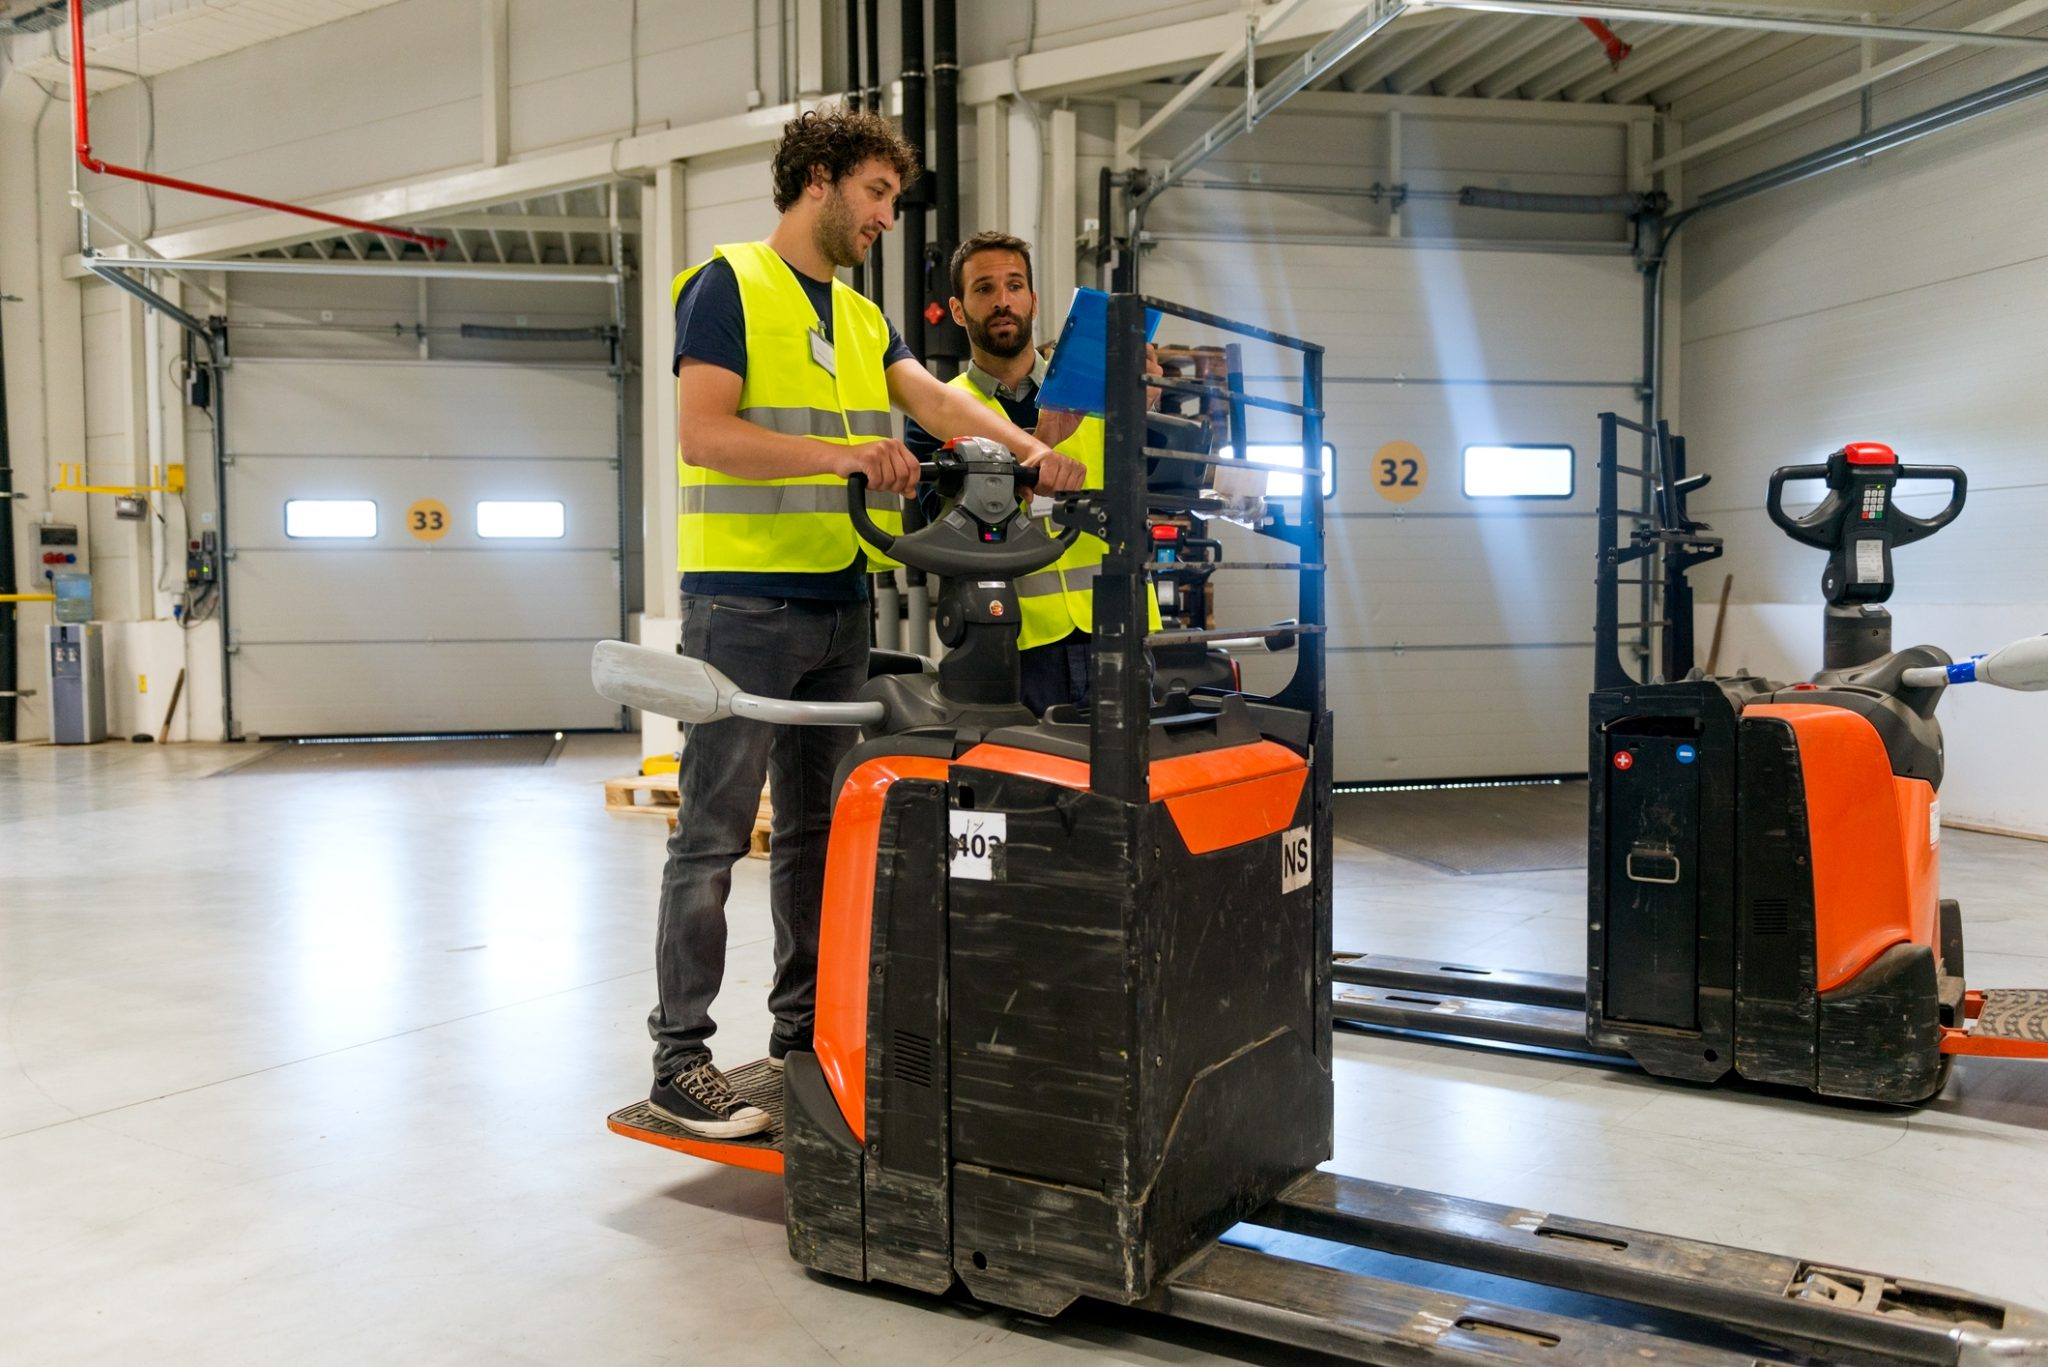 Safety training should be a priority at every company. Worker training on forklift.